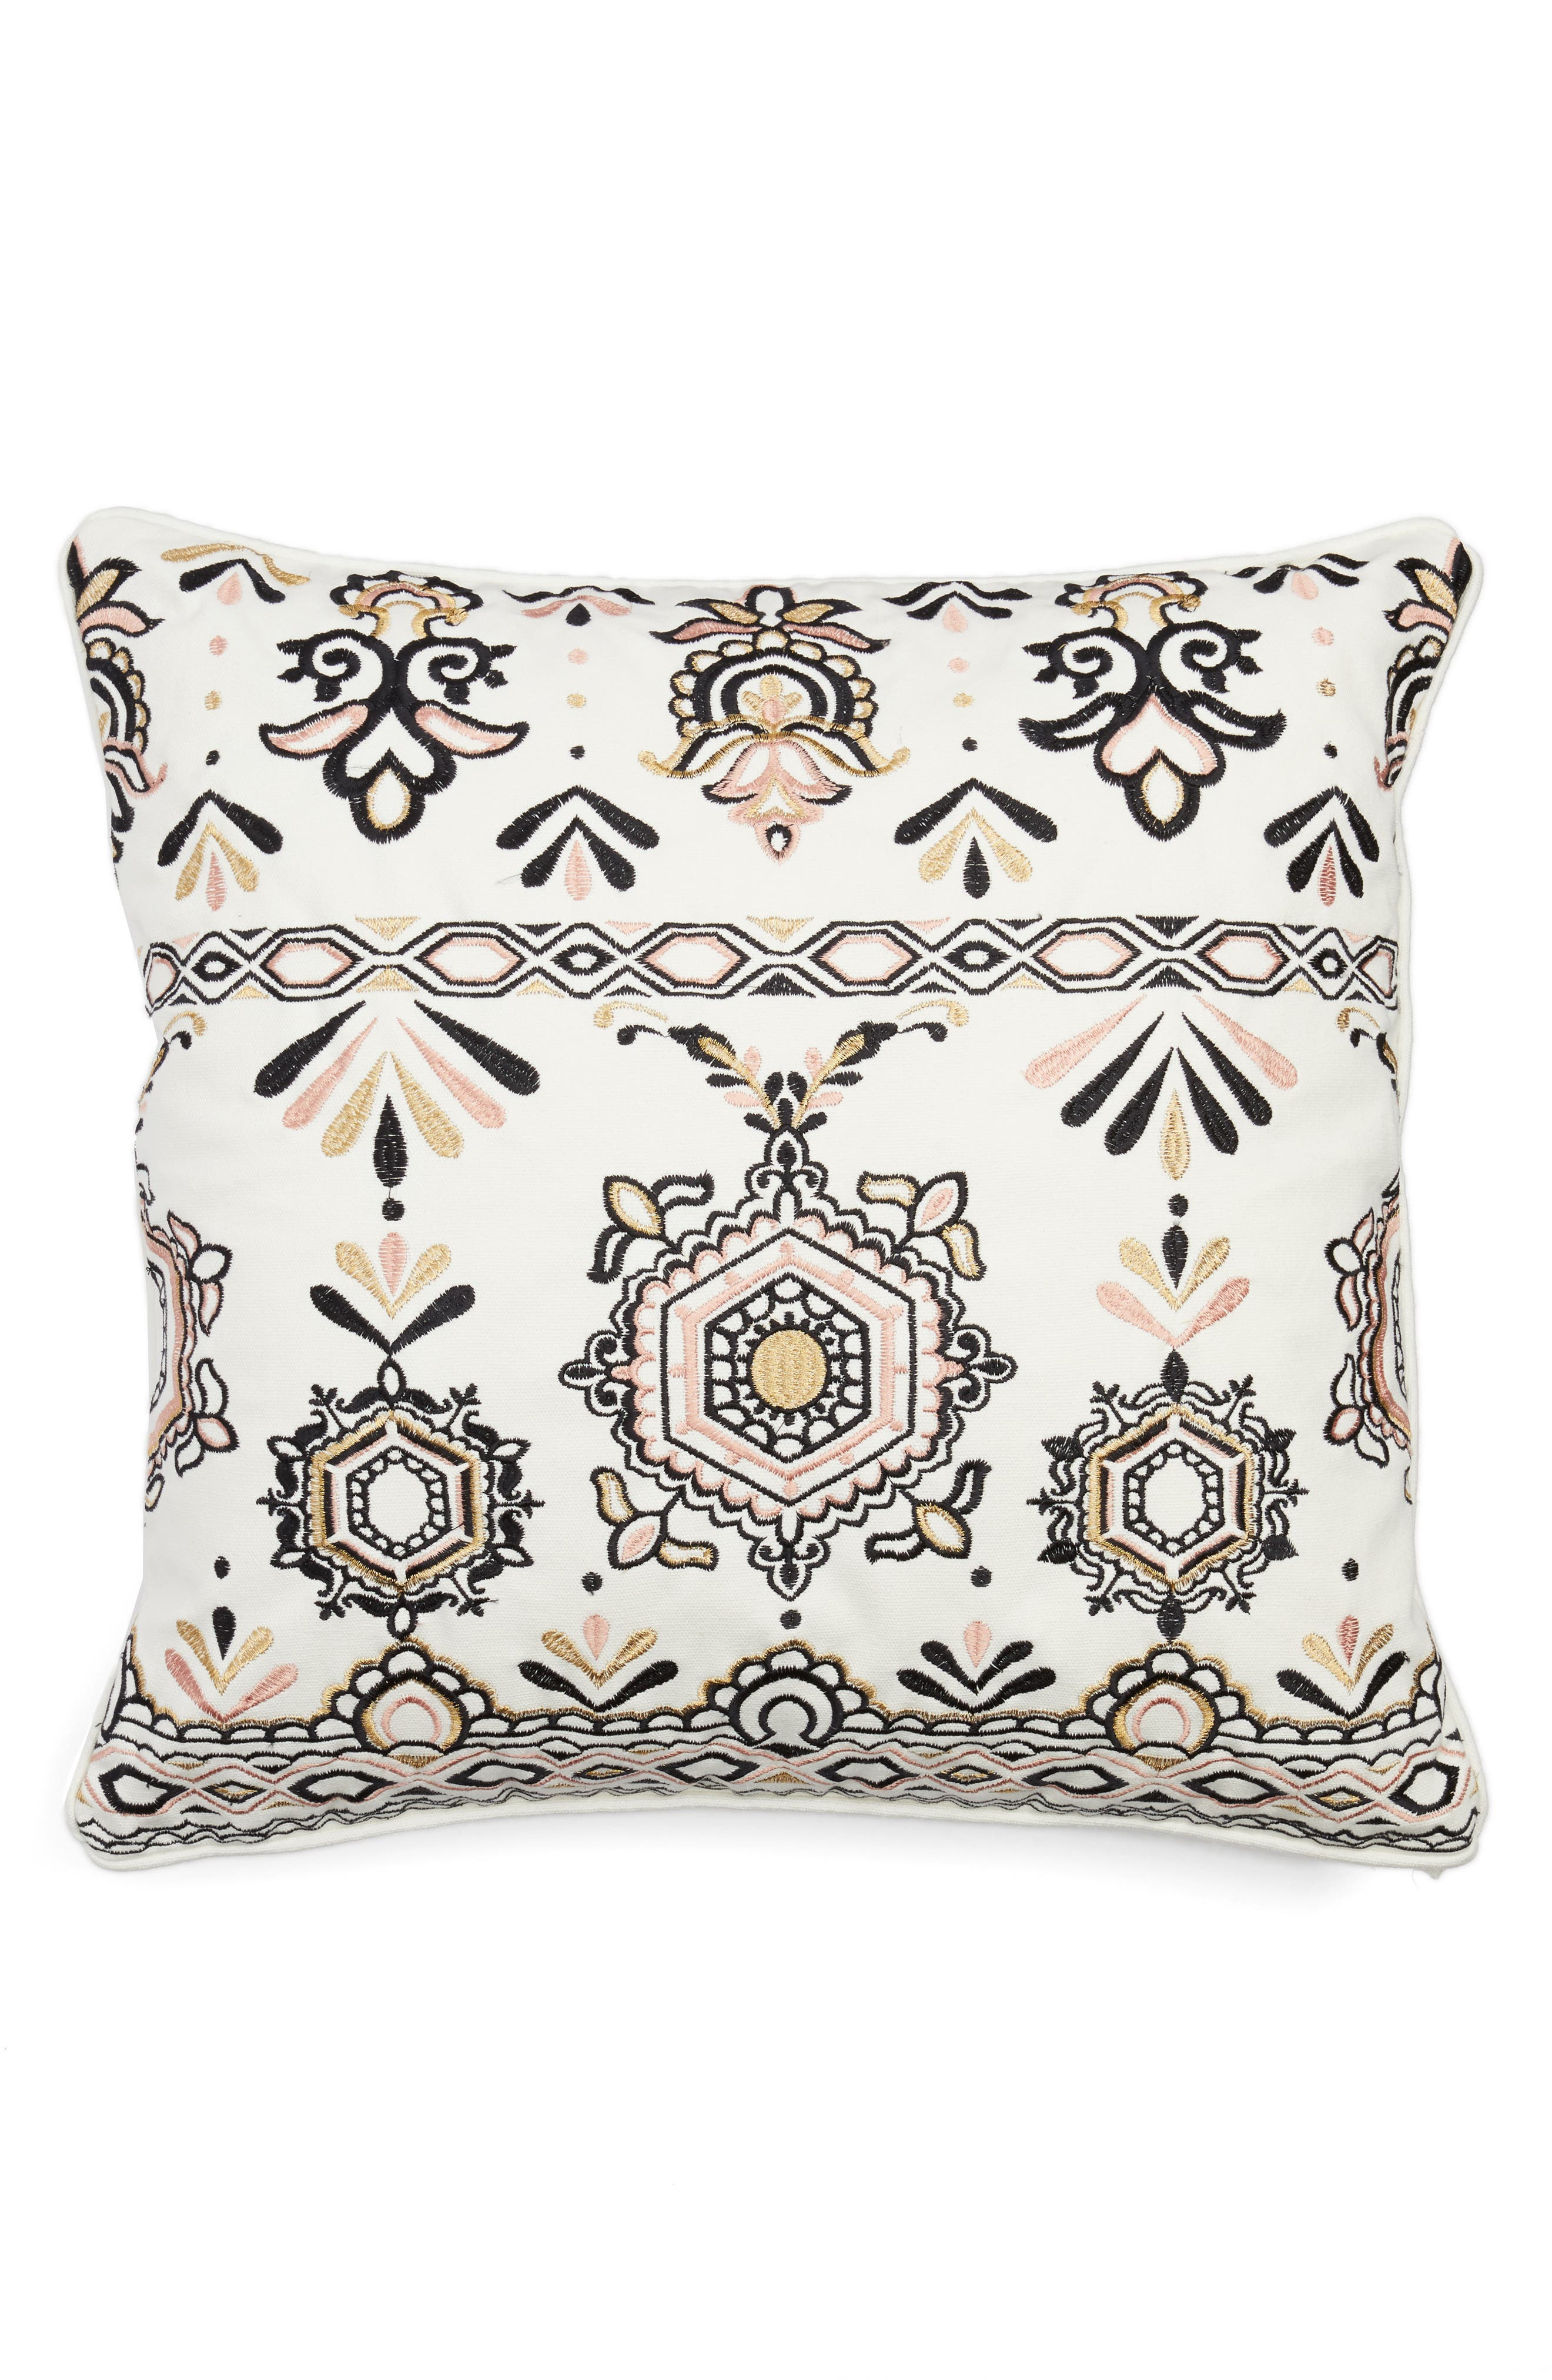 Embroidered Medallion Pillow,                             Main thumbnail 1, color,                             White